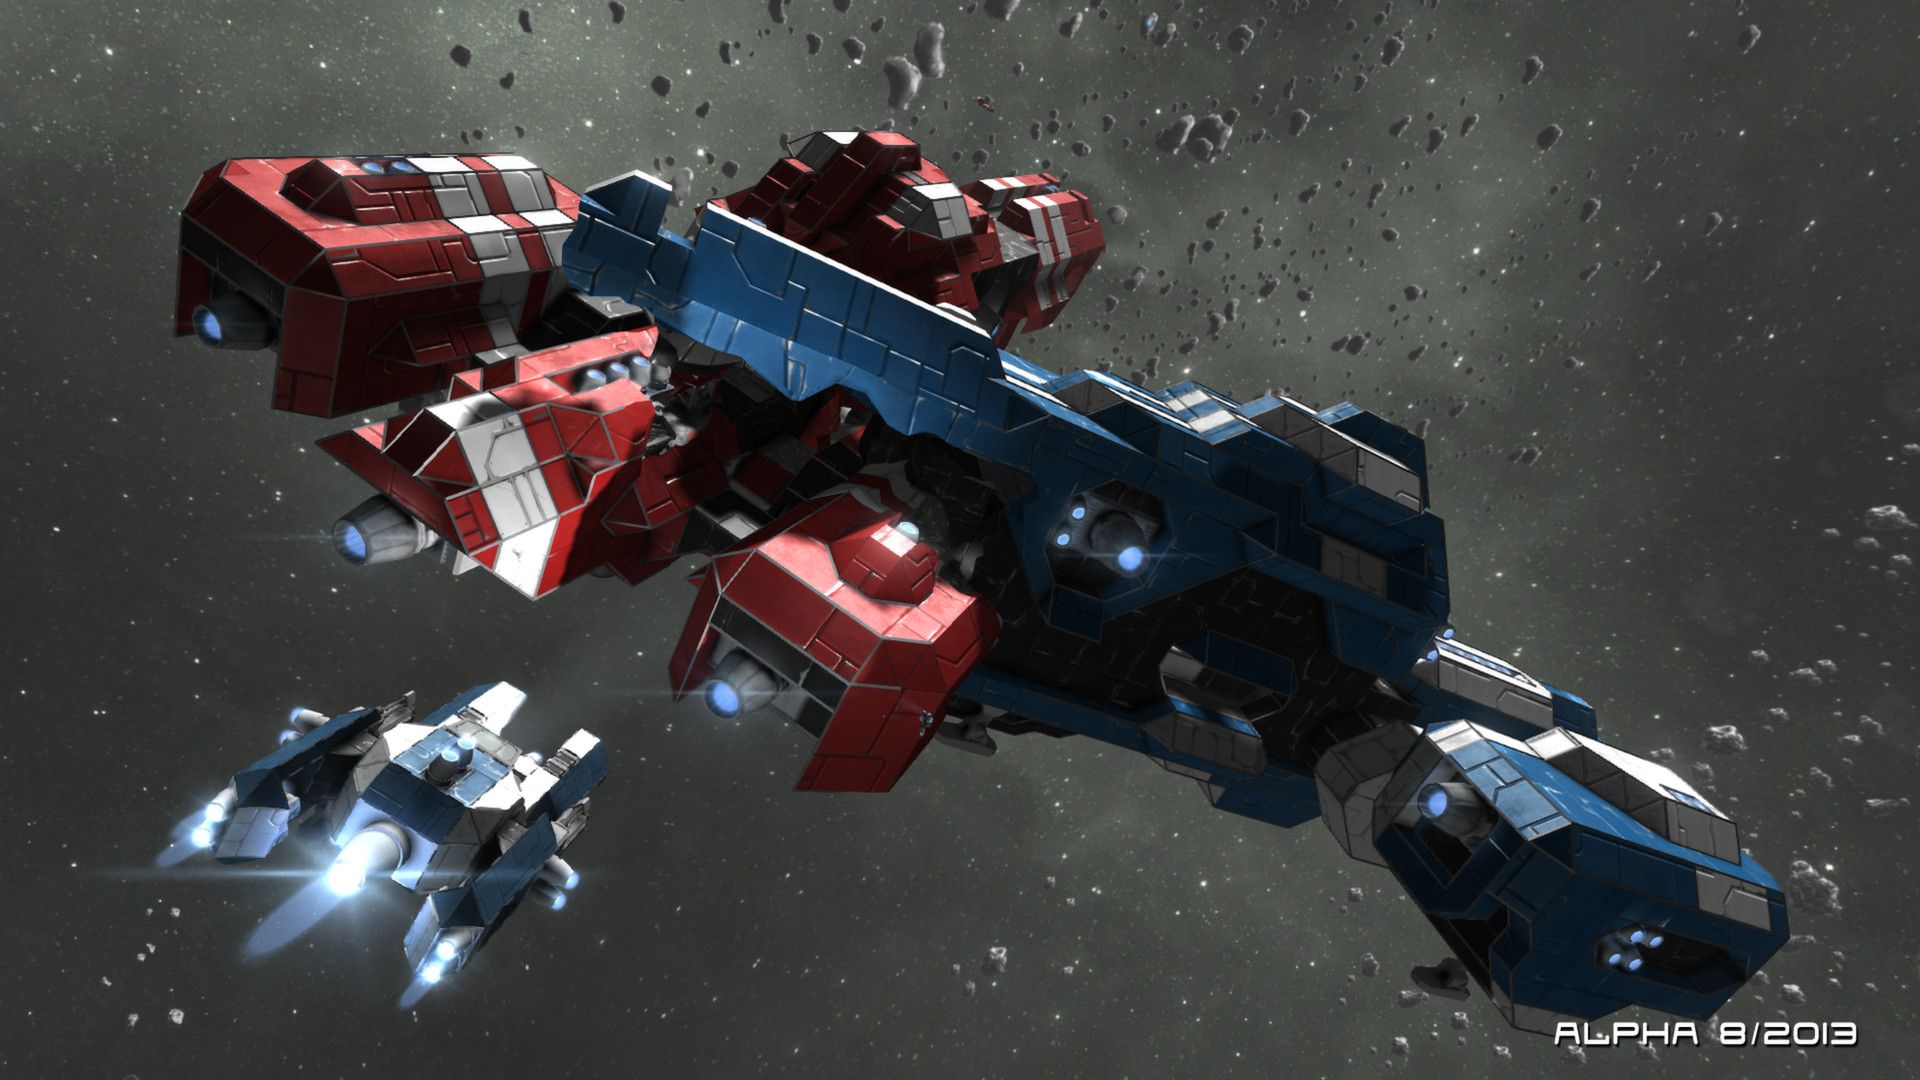 space engineers asteroid ship - photo #24